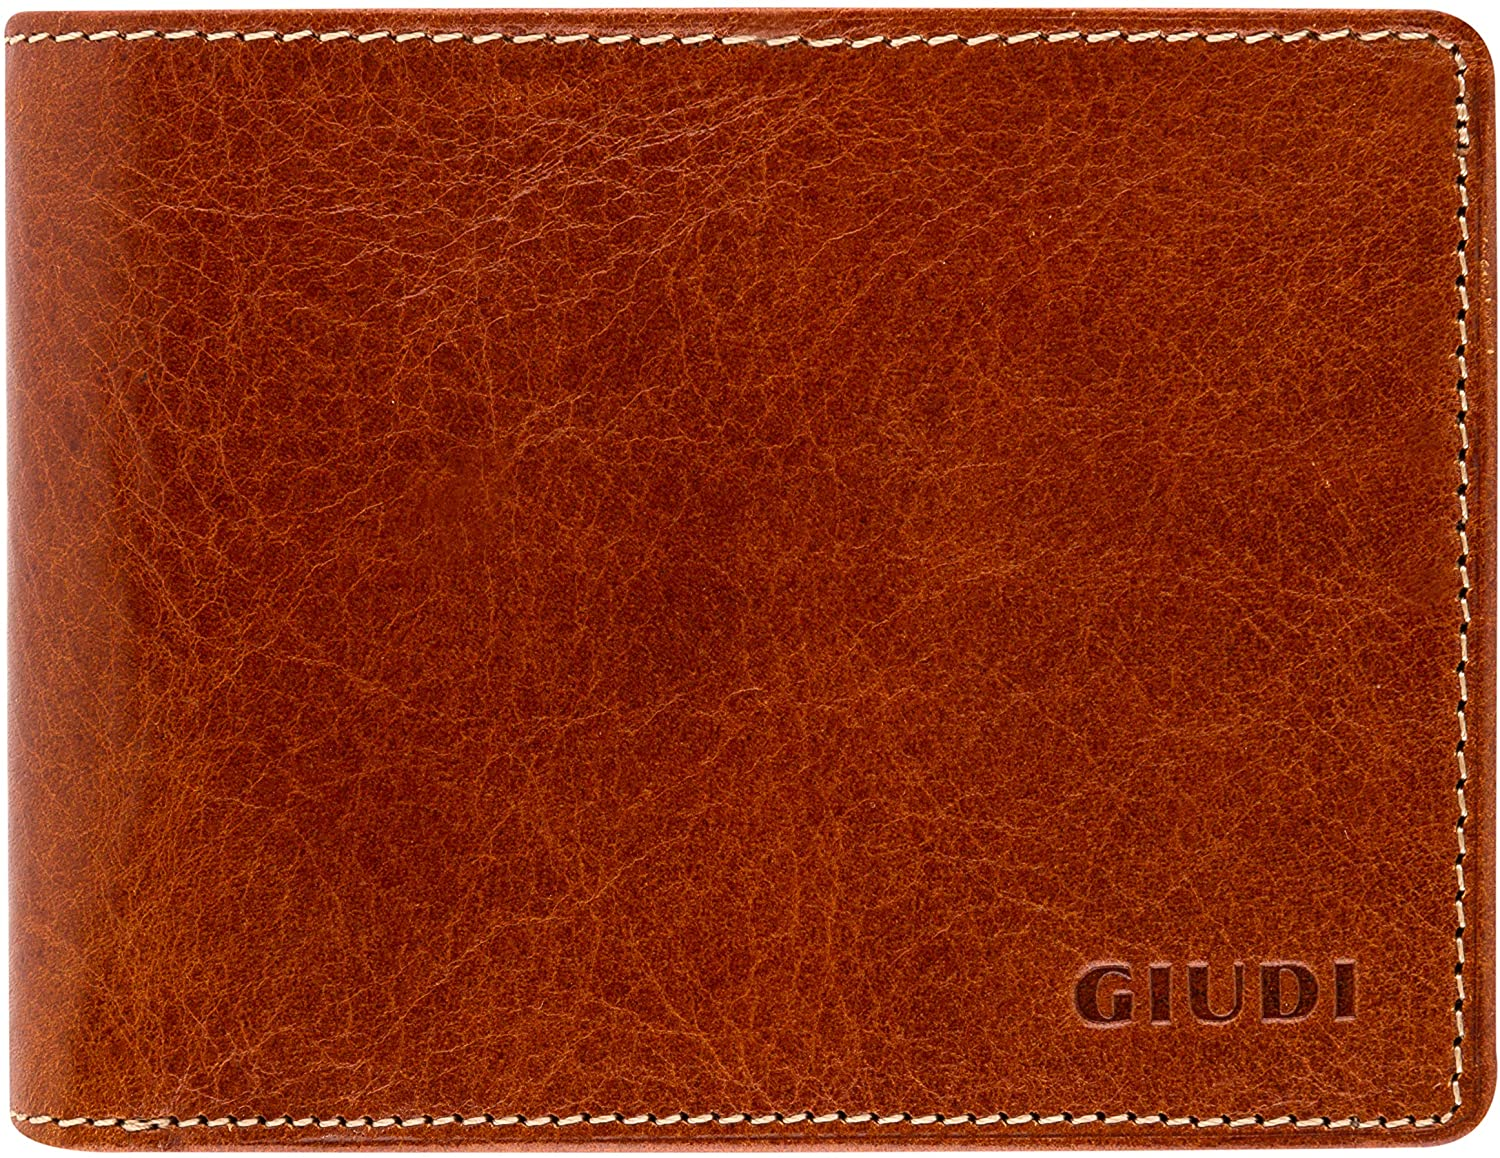 Giudi Men's Leather Wallet – Cow Leather Deluxe Wallet for Men – Made in Italy – Elegant Brown, Multiple Slots and Pockets – Slick and Lightweight Design – Perfect Luxury Gift for Men